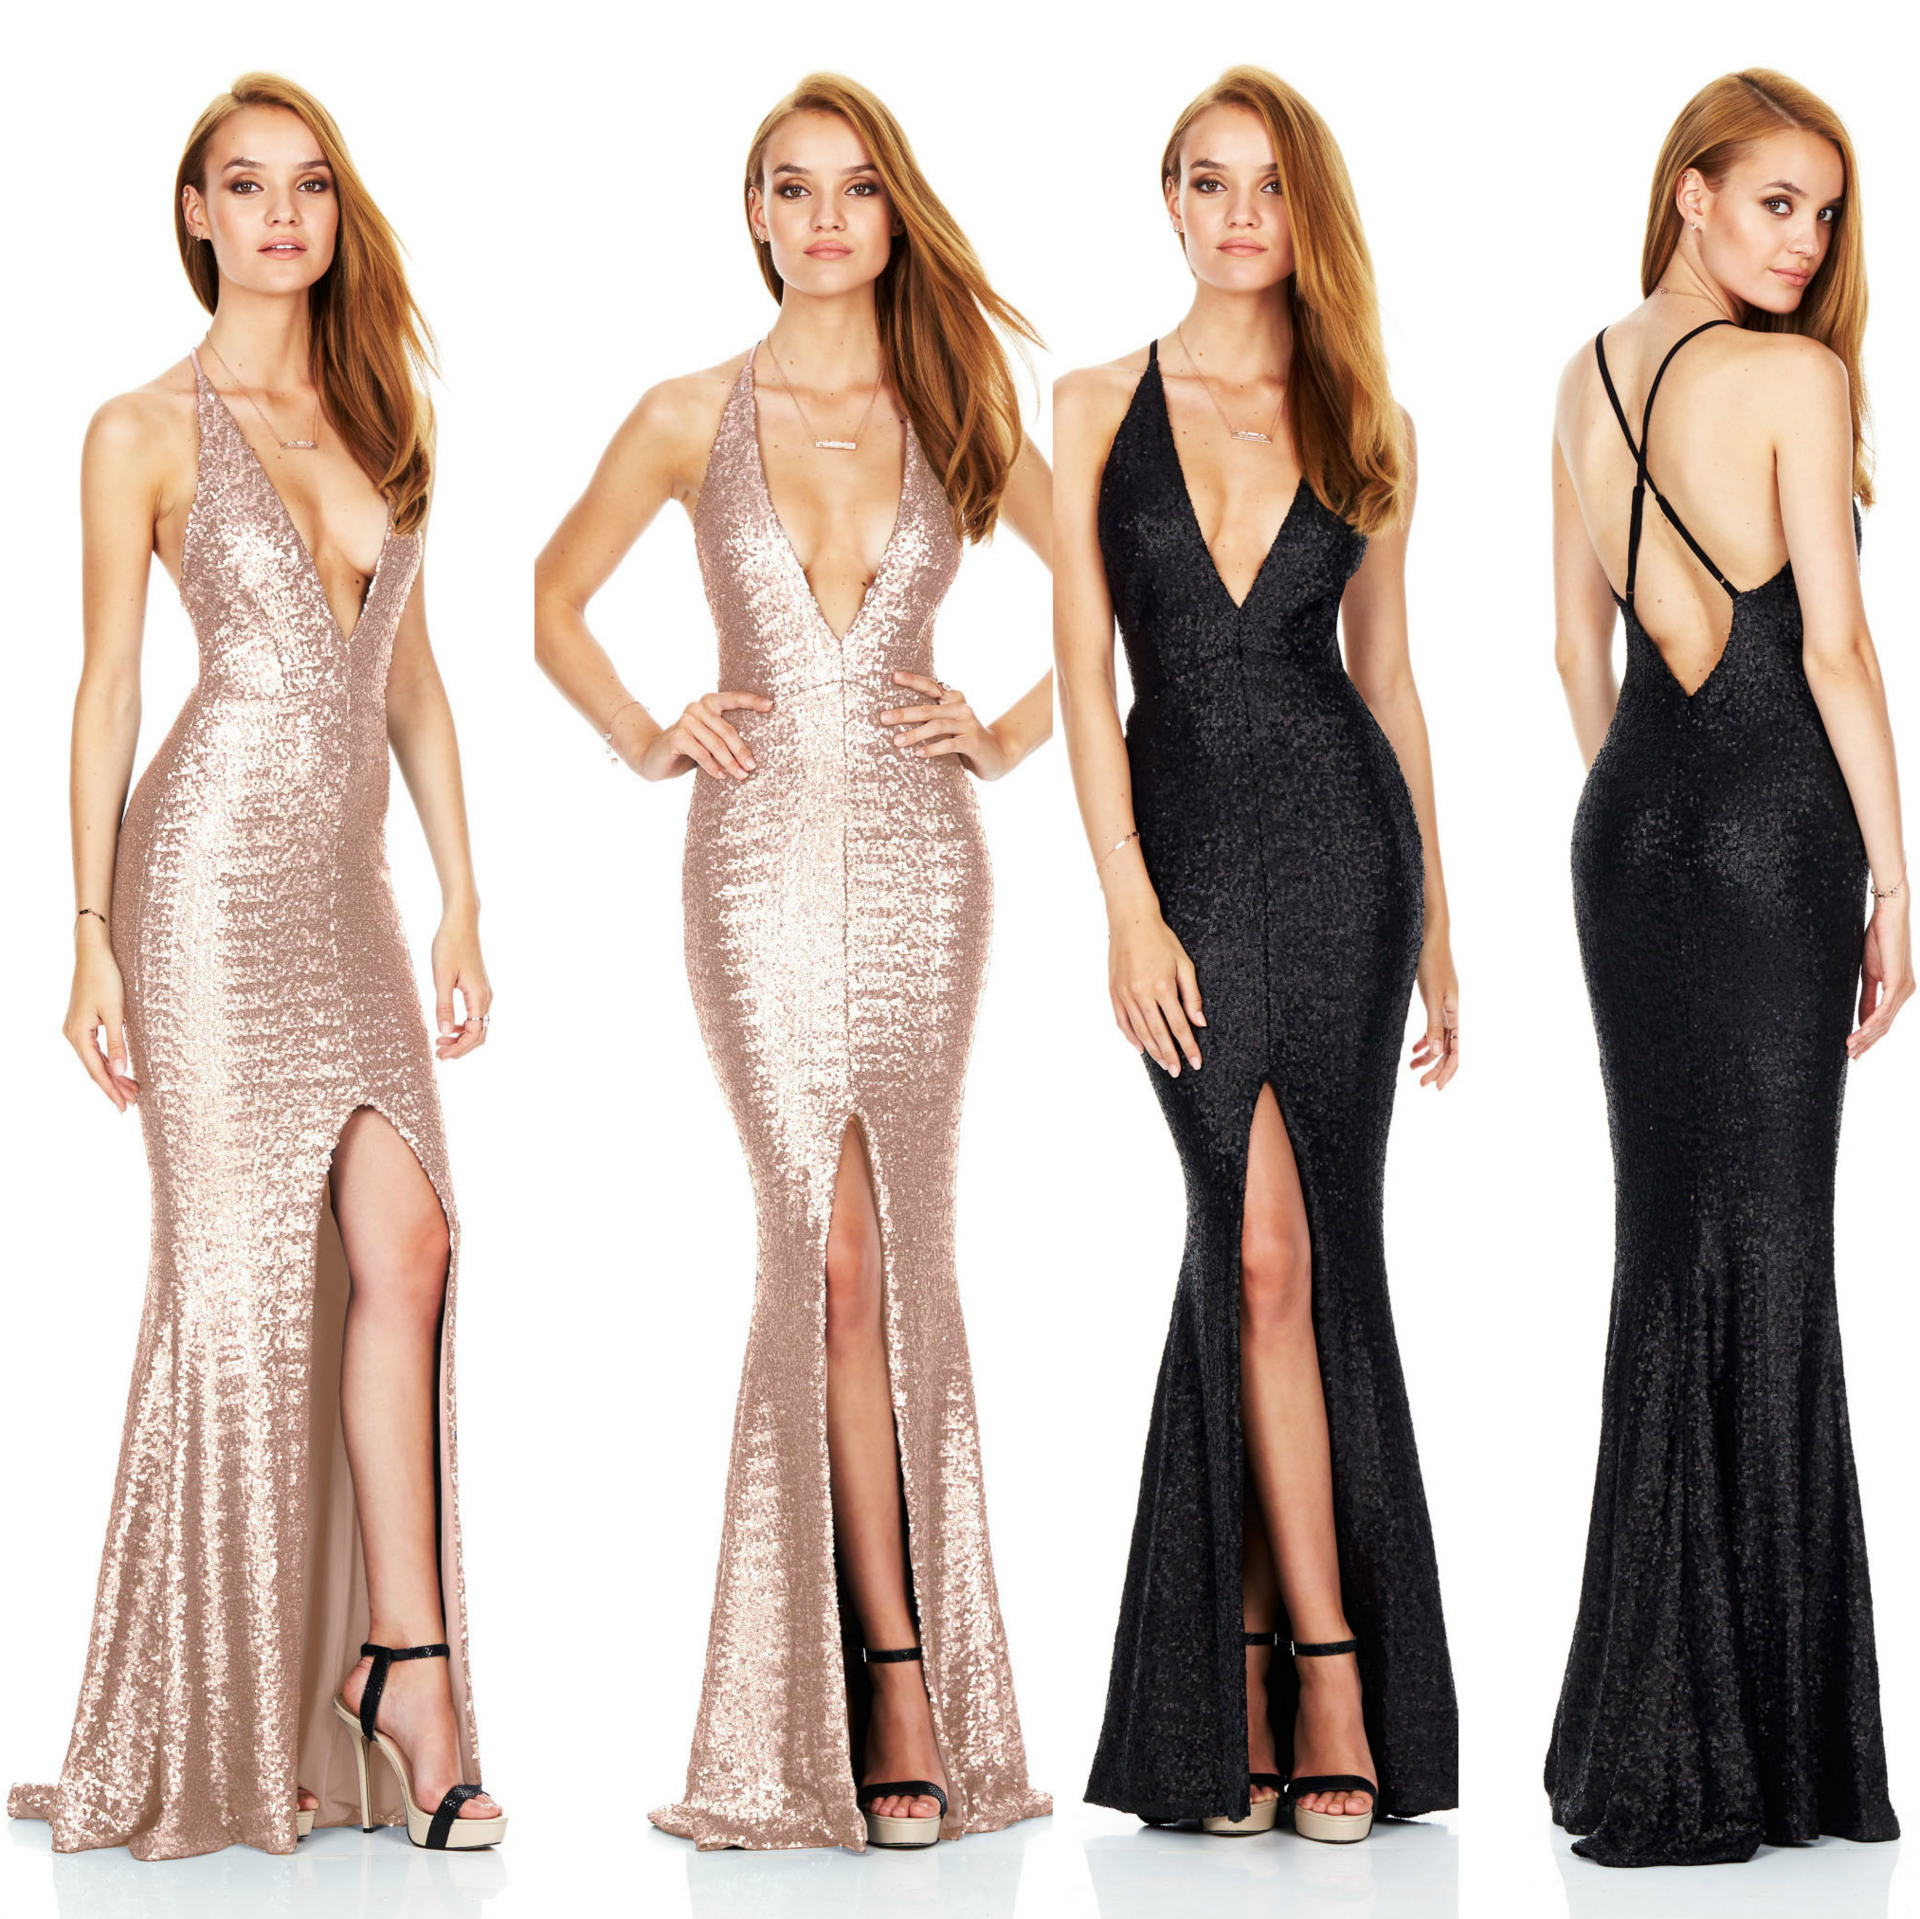 435217f8691 Details about Sexy Women Bandage Bodycon Sleeveless Formal Evening Party  Cocktail Long Dress